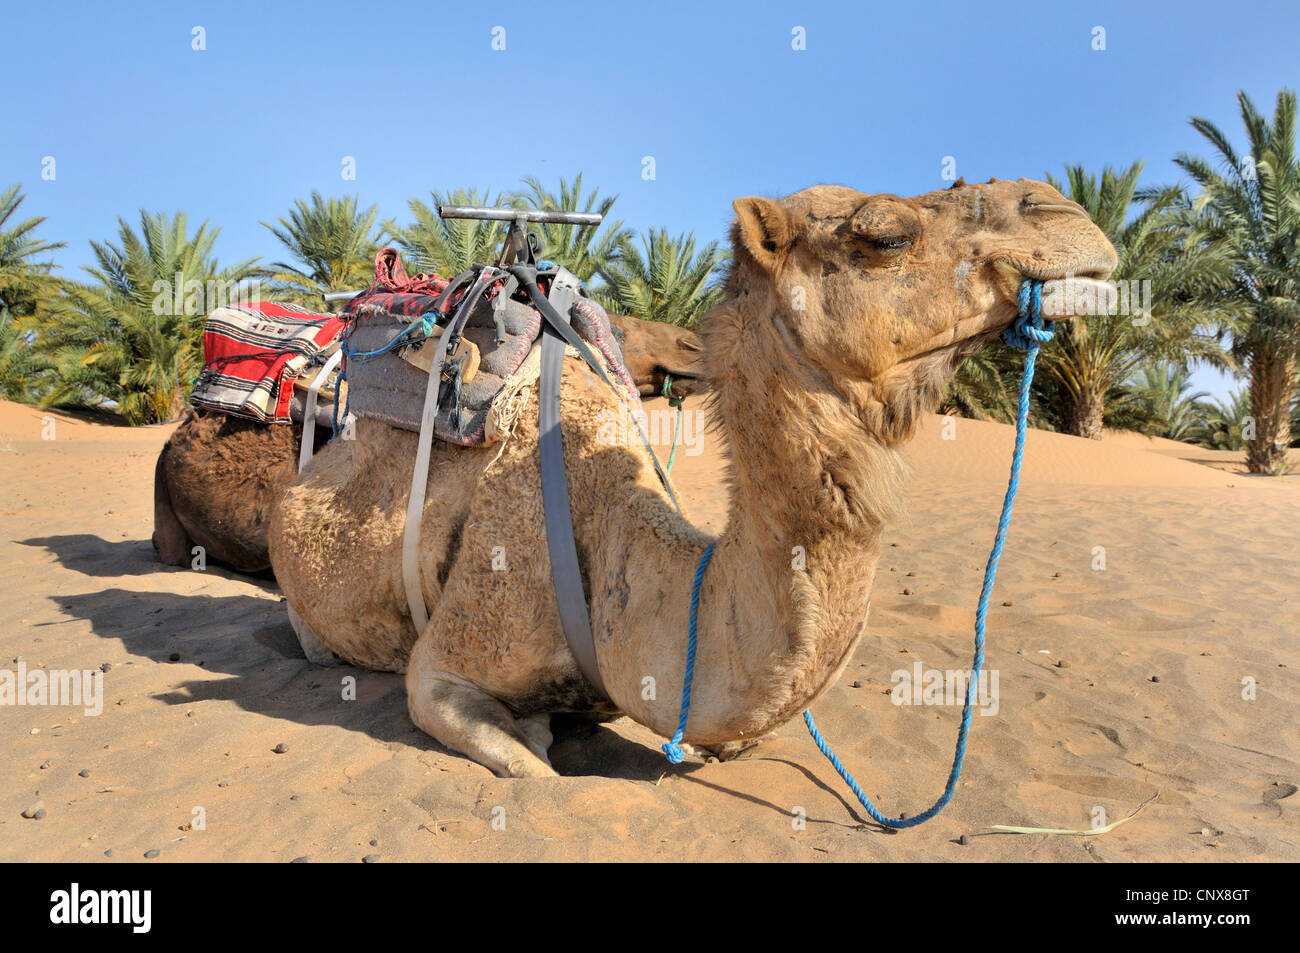 Camel dating